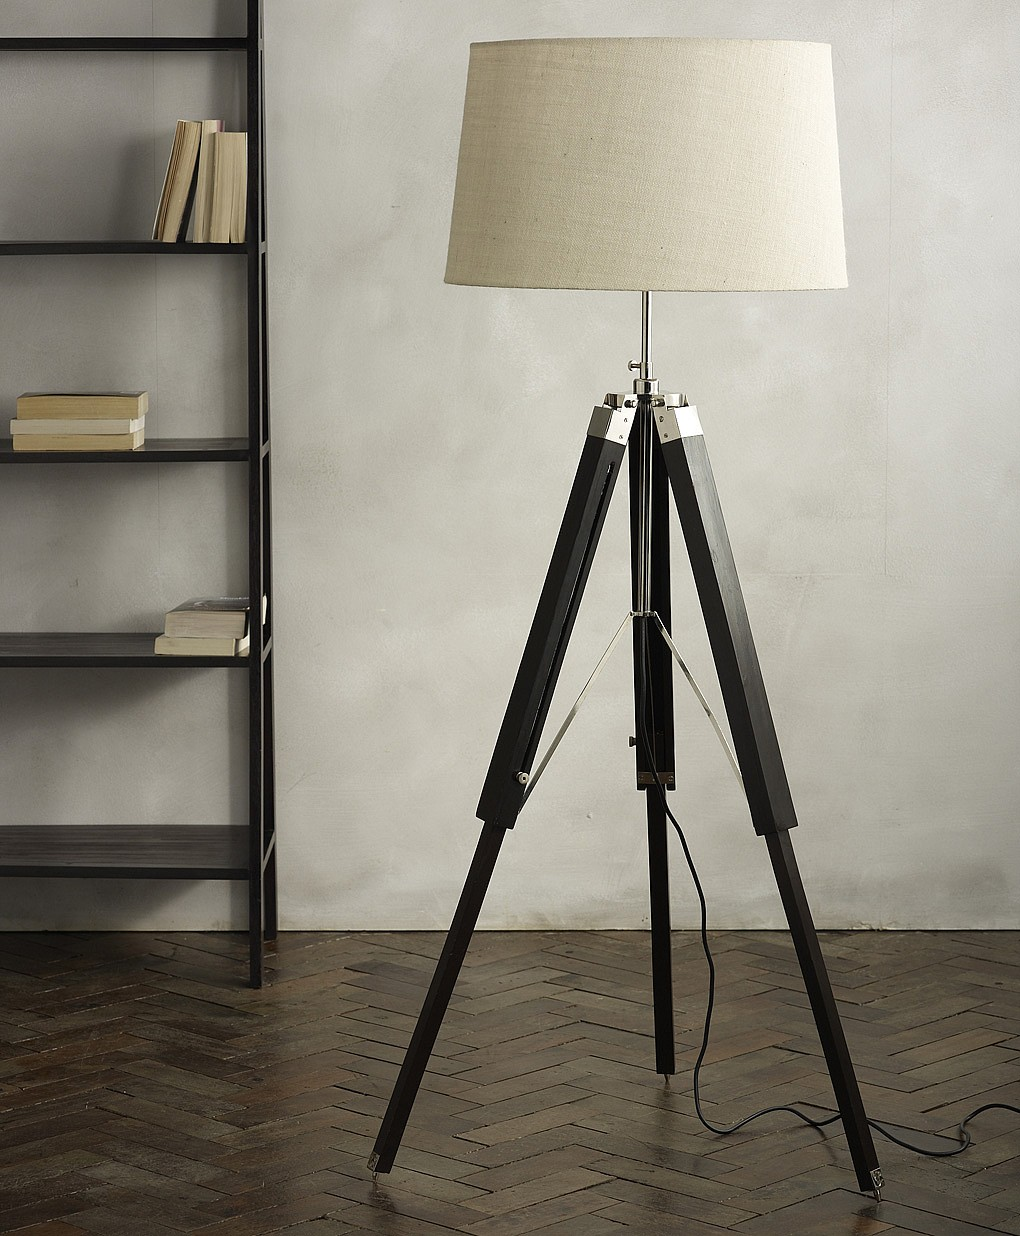 Tripod Lamp | Reading Floor Lamps Adjustable | Crate and Barrel Lamps